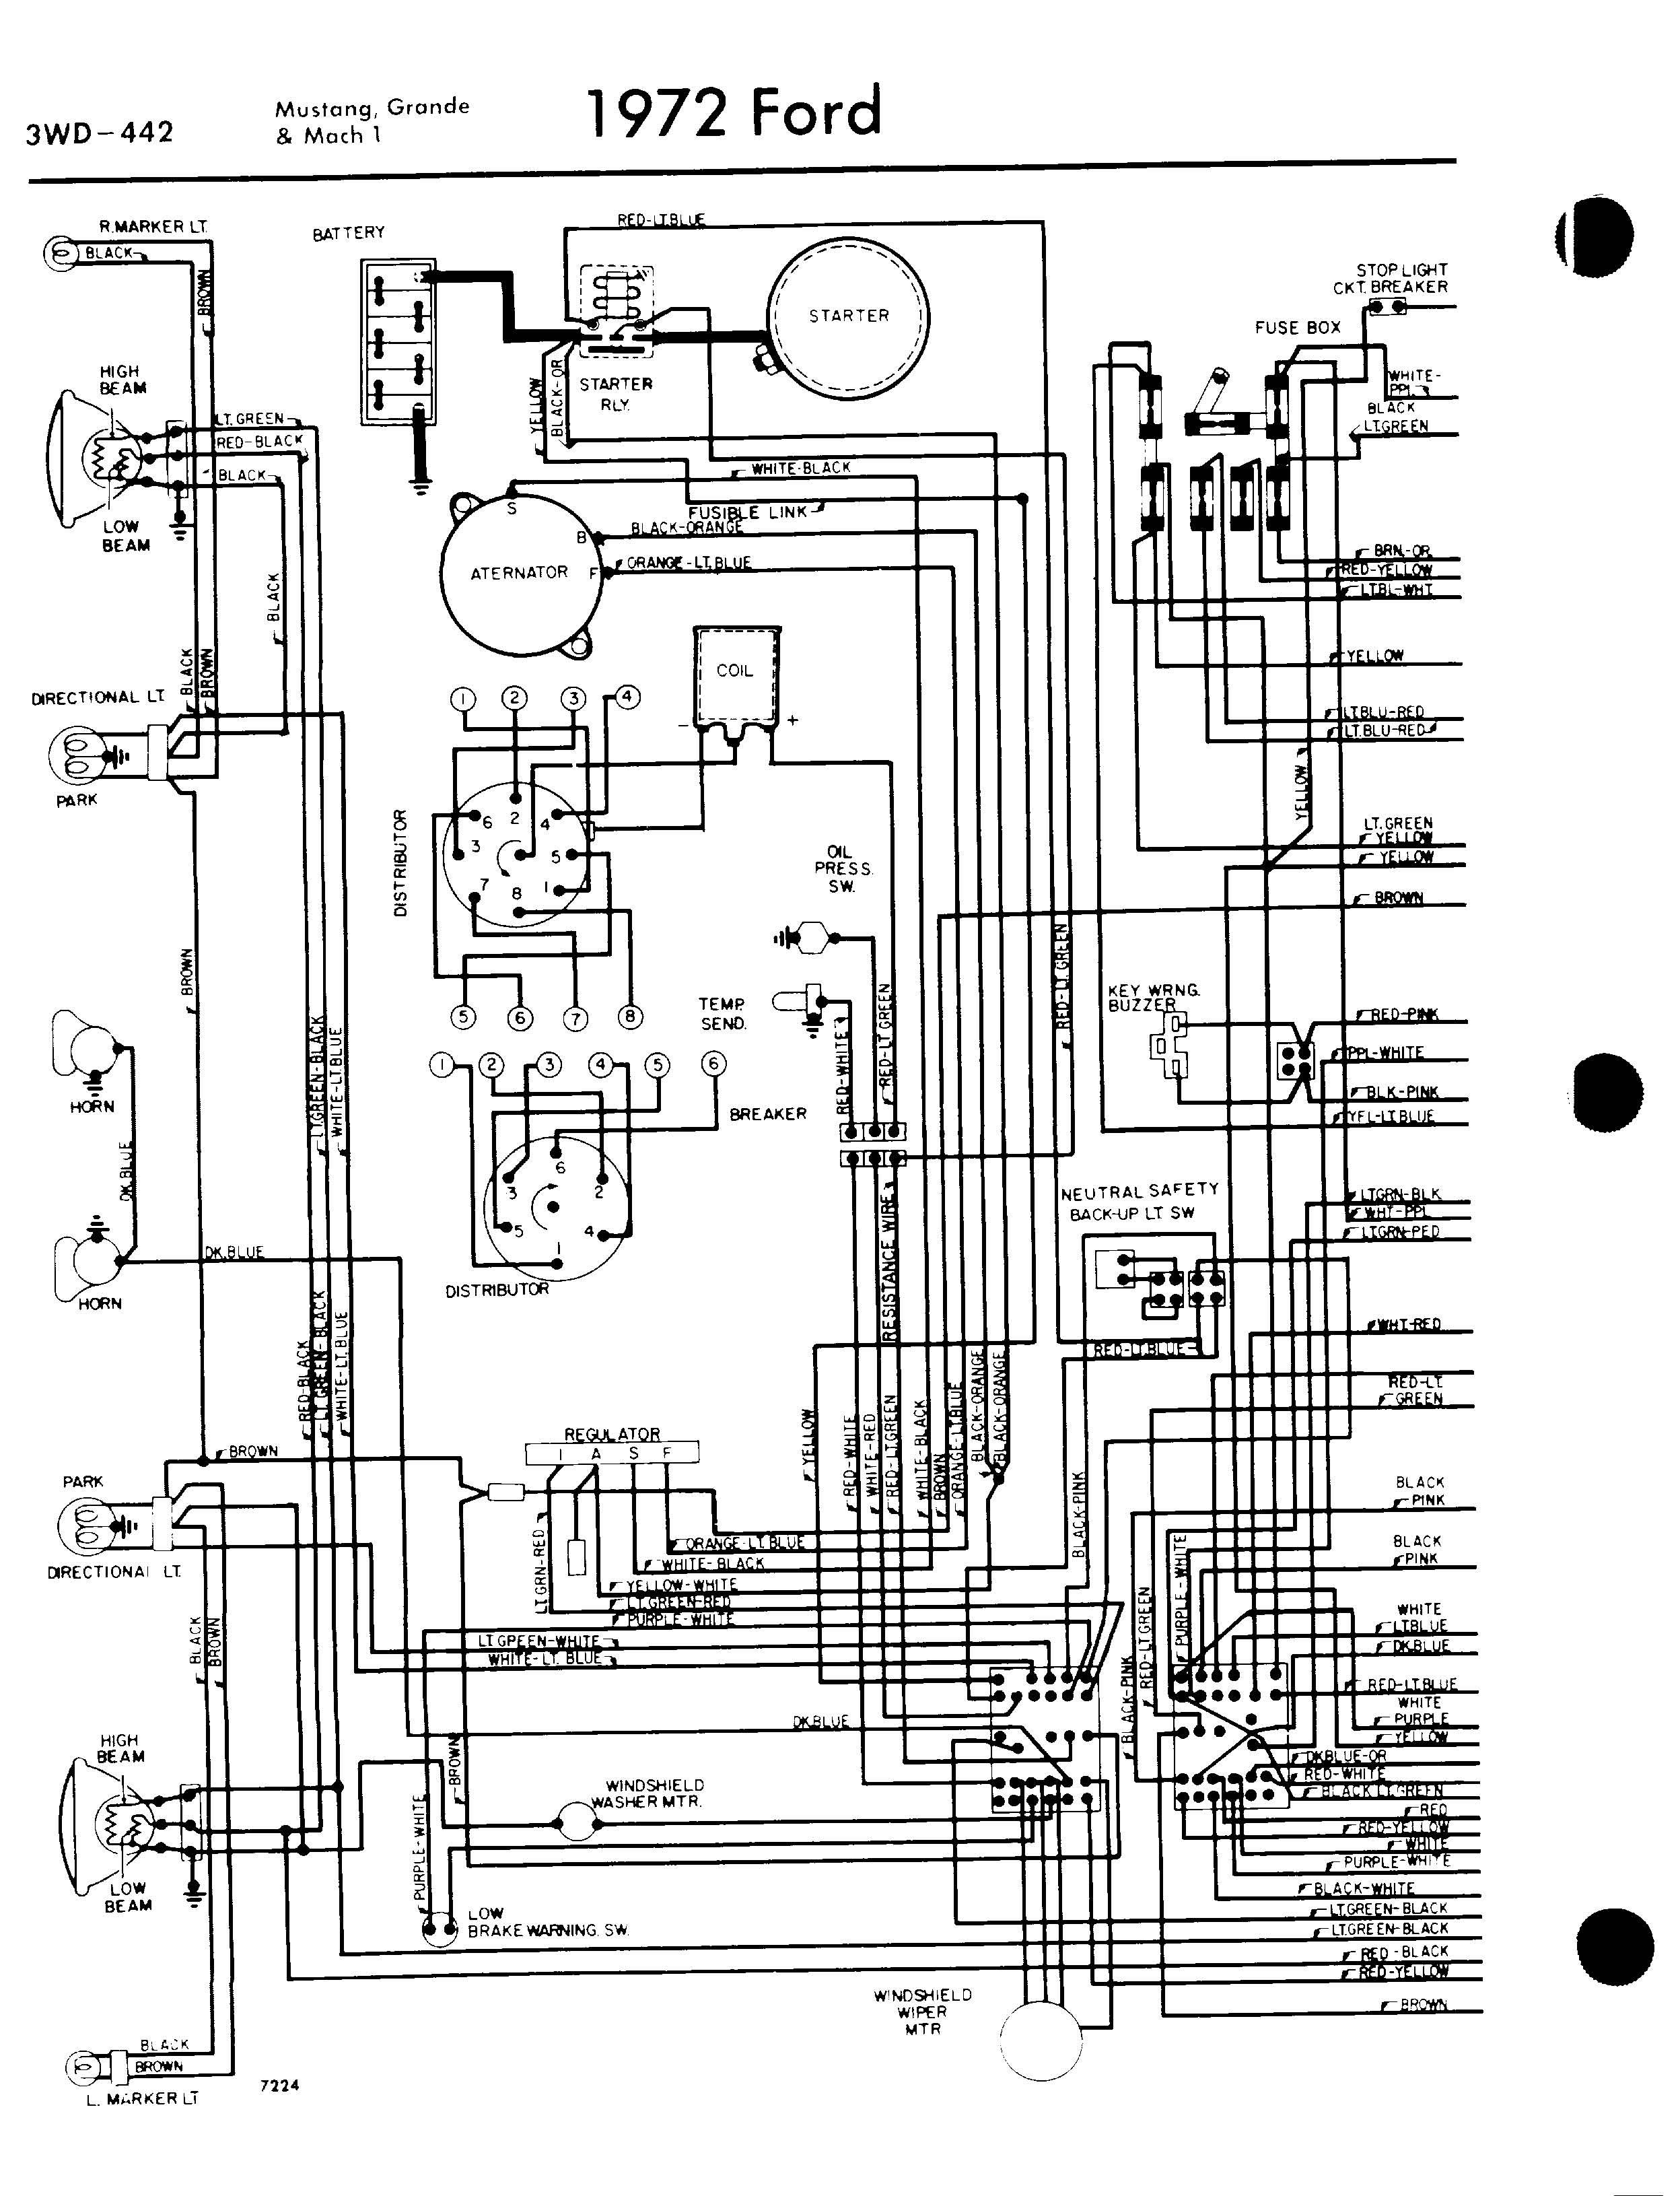 1970 Ford Mustang Fuse Block Diagram Wiring Schematic Exclusive 1969 Torino Co Harness Schematics Diagrams U2022 Rh Orwellvets